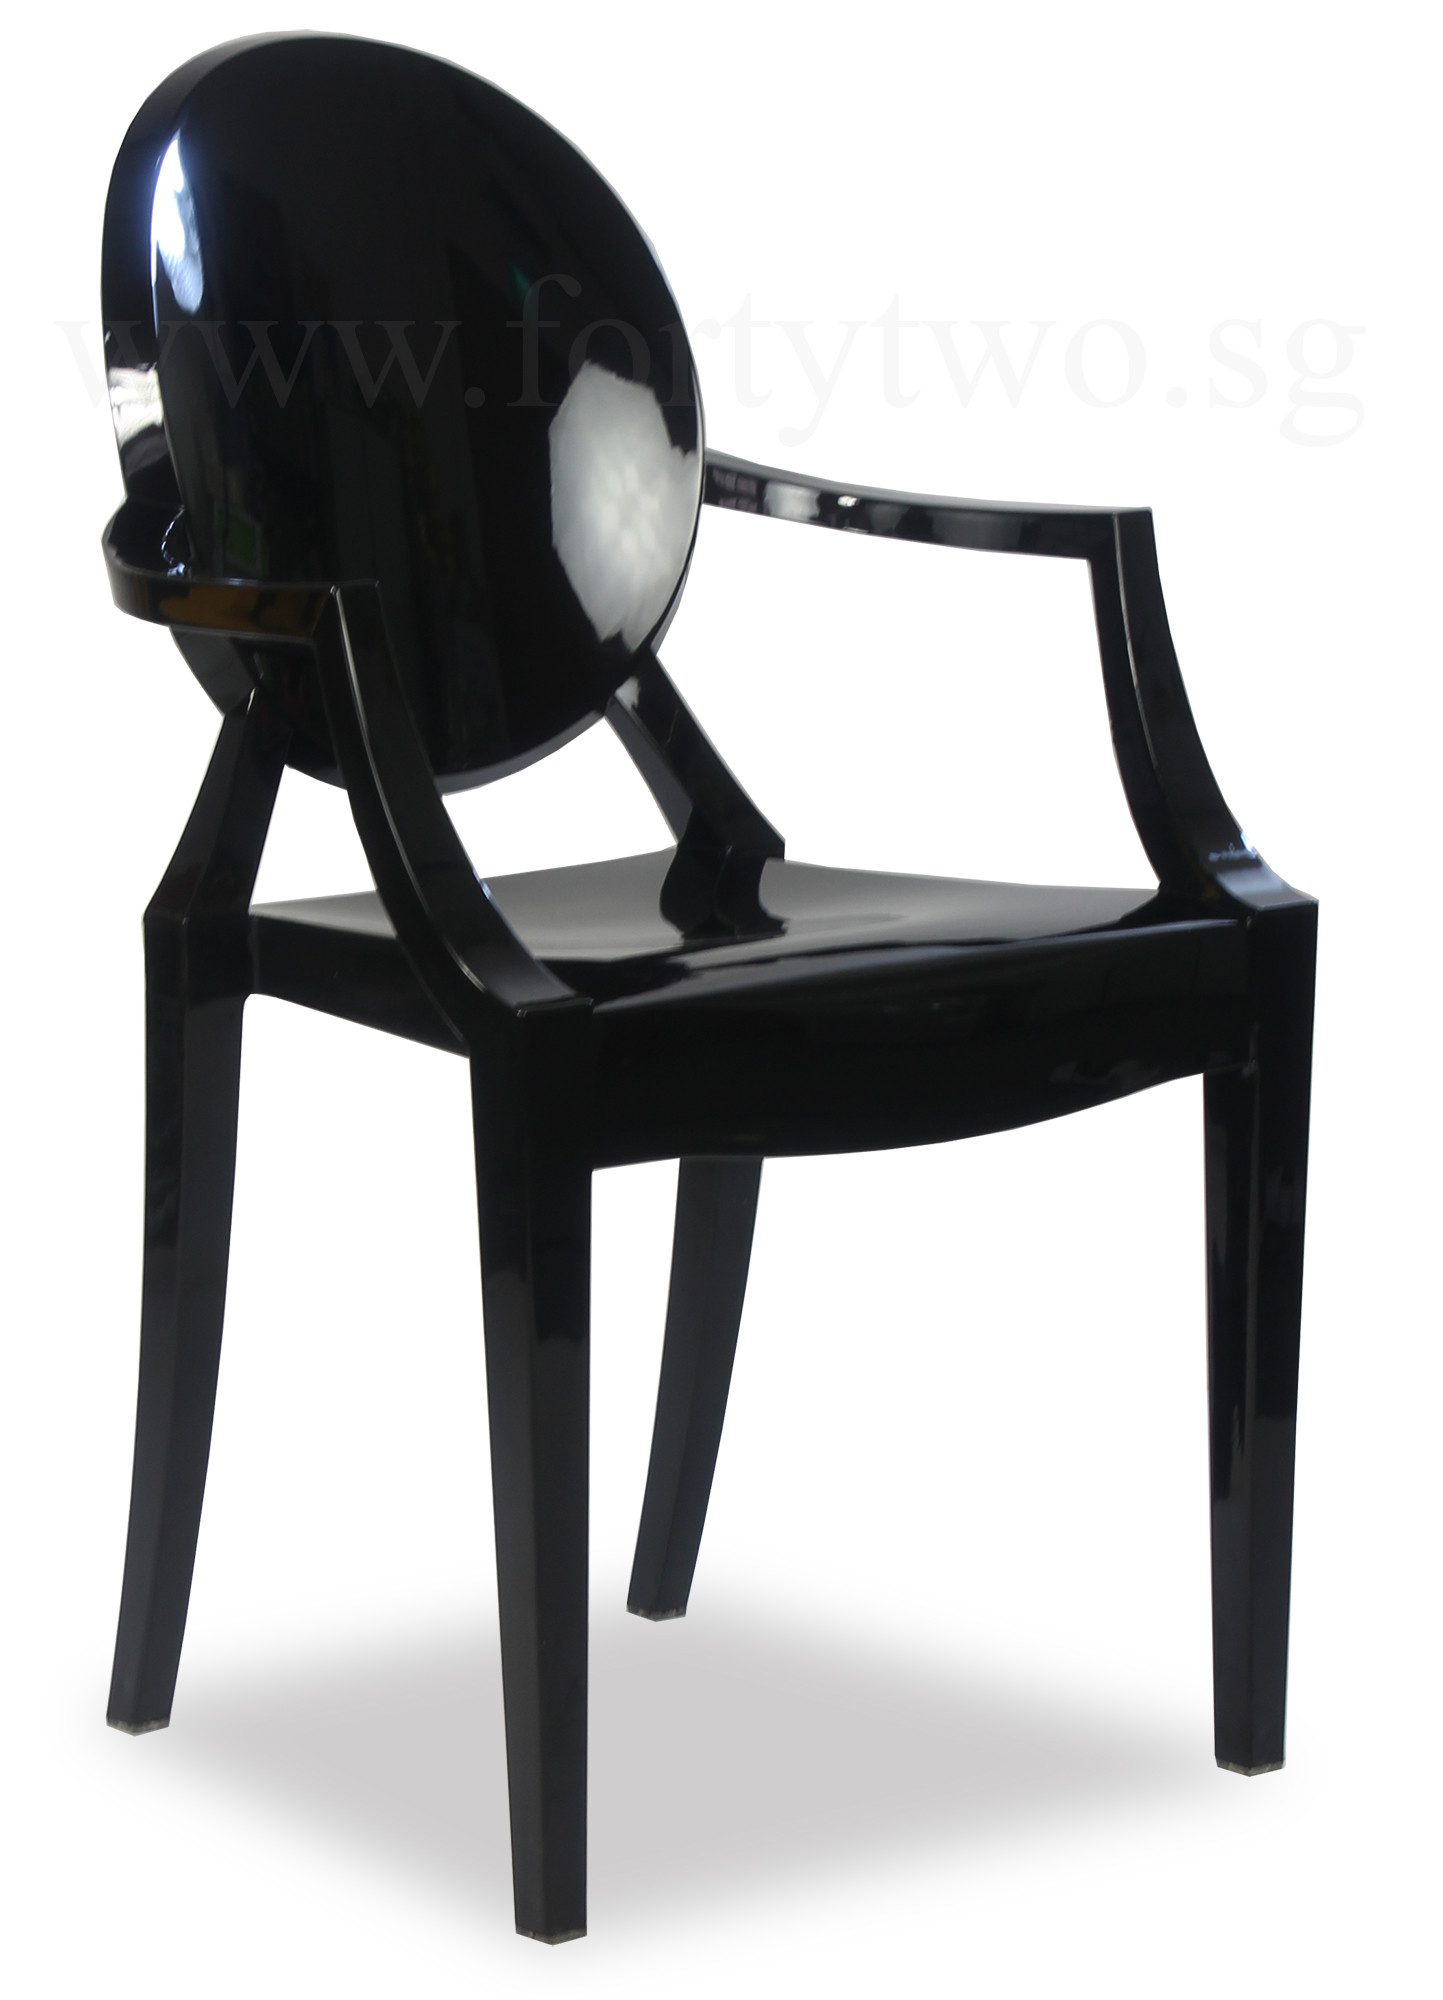 Designer Replica Louis Ghost Arm Chair Black. Display Gallery Item 1 ...